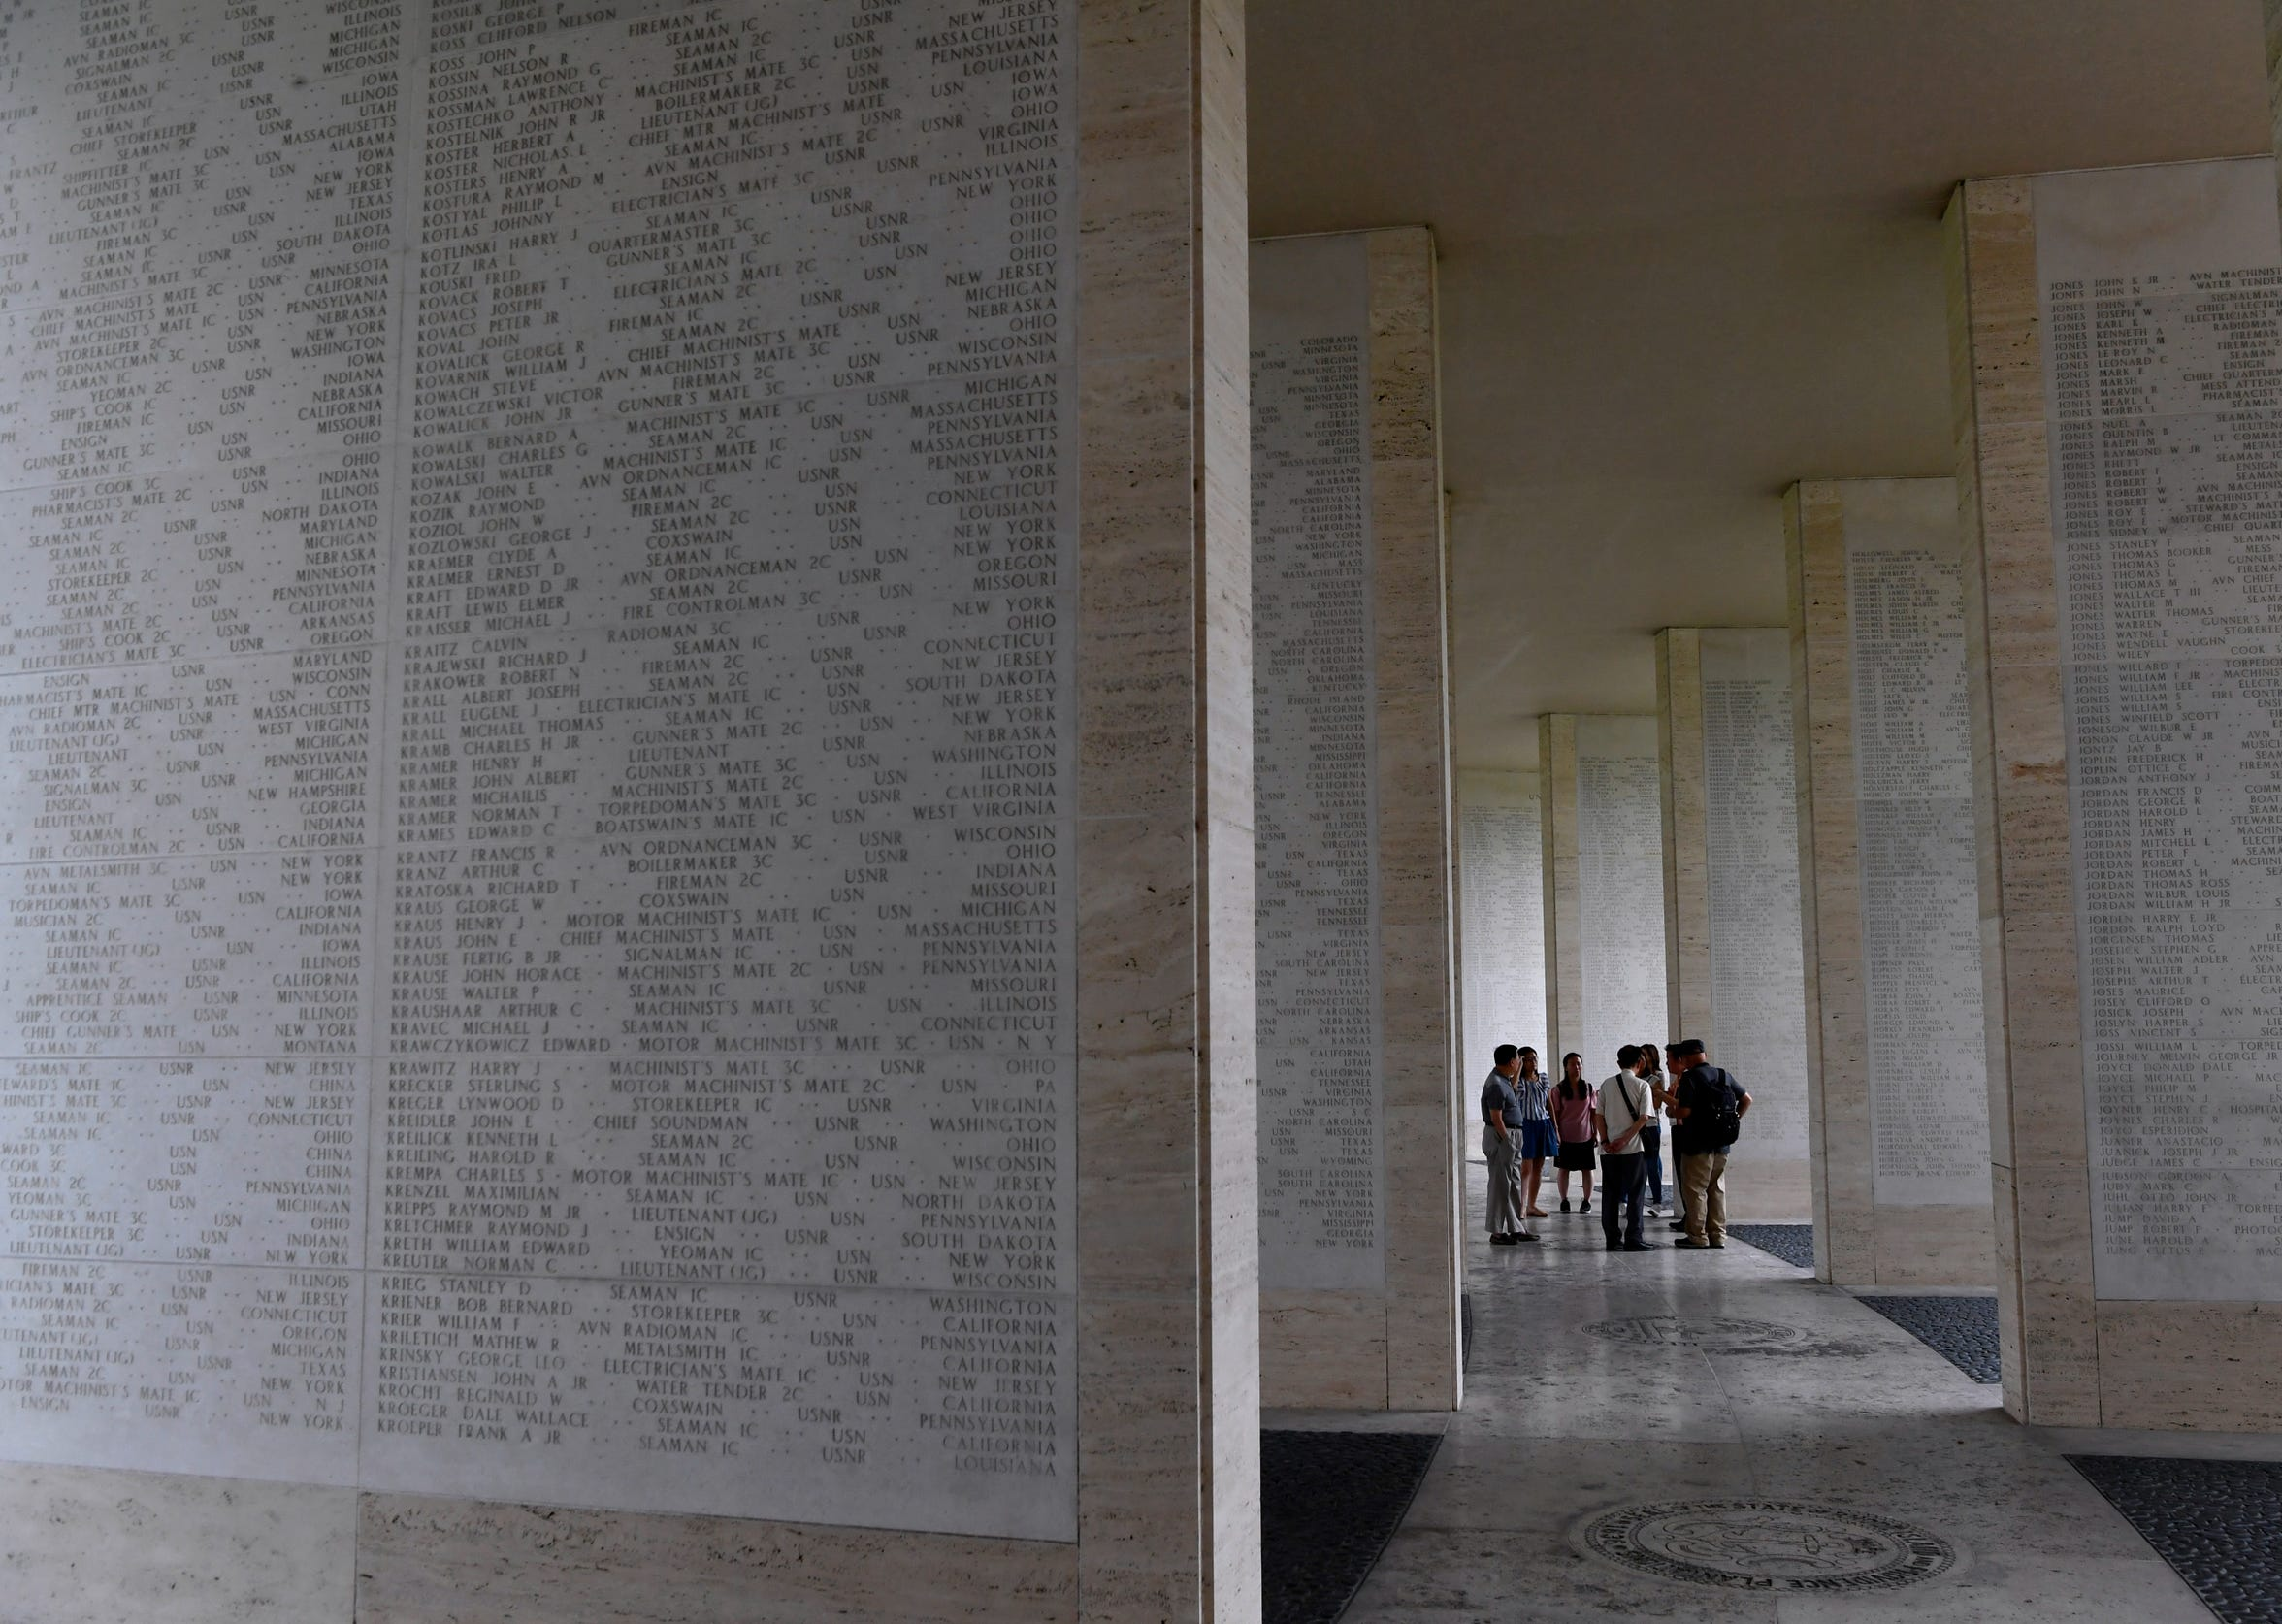 A group of visitors Saturday stands inside one of the hemicycles at Manila American Cemetery. The walls around them contain the names of more than 36,000 World War II missing service members.